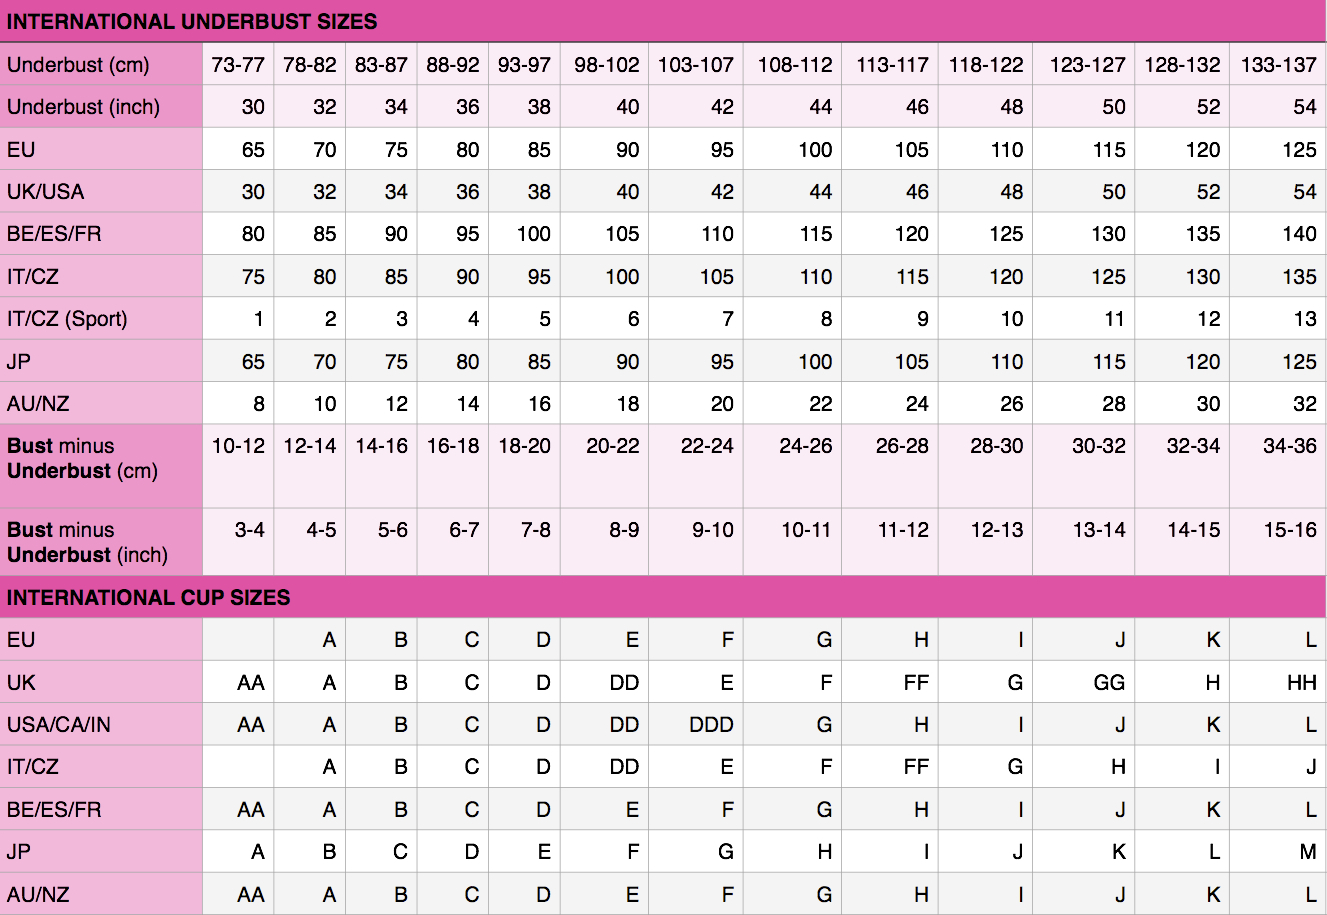 international size chart Our international size charts let you figure out your sizing conversion, whether you are a 75B or a 12B! An easy way to compare sizing with international lingerie, simply hover over your current size and watch the pink bars highlight all your international sizing conversions.